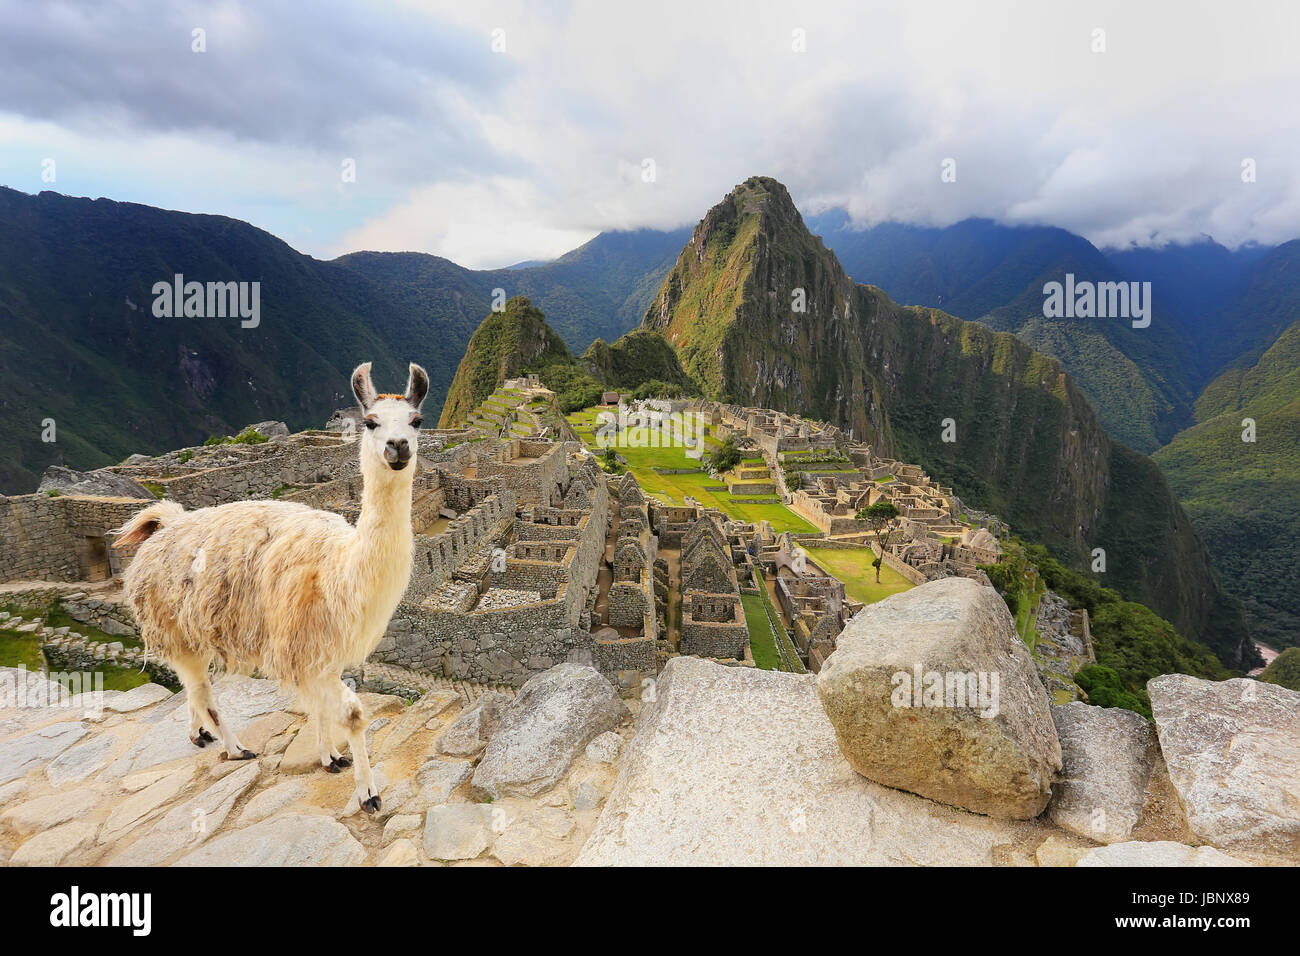 Llama standing at Machu Picchu overlook in Peru. In 2007 Machu Picchu was voted one of the New Seven Wonders of - Stock Image